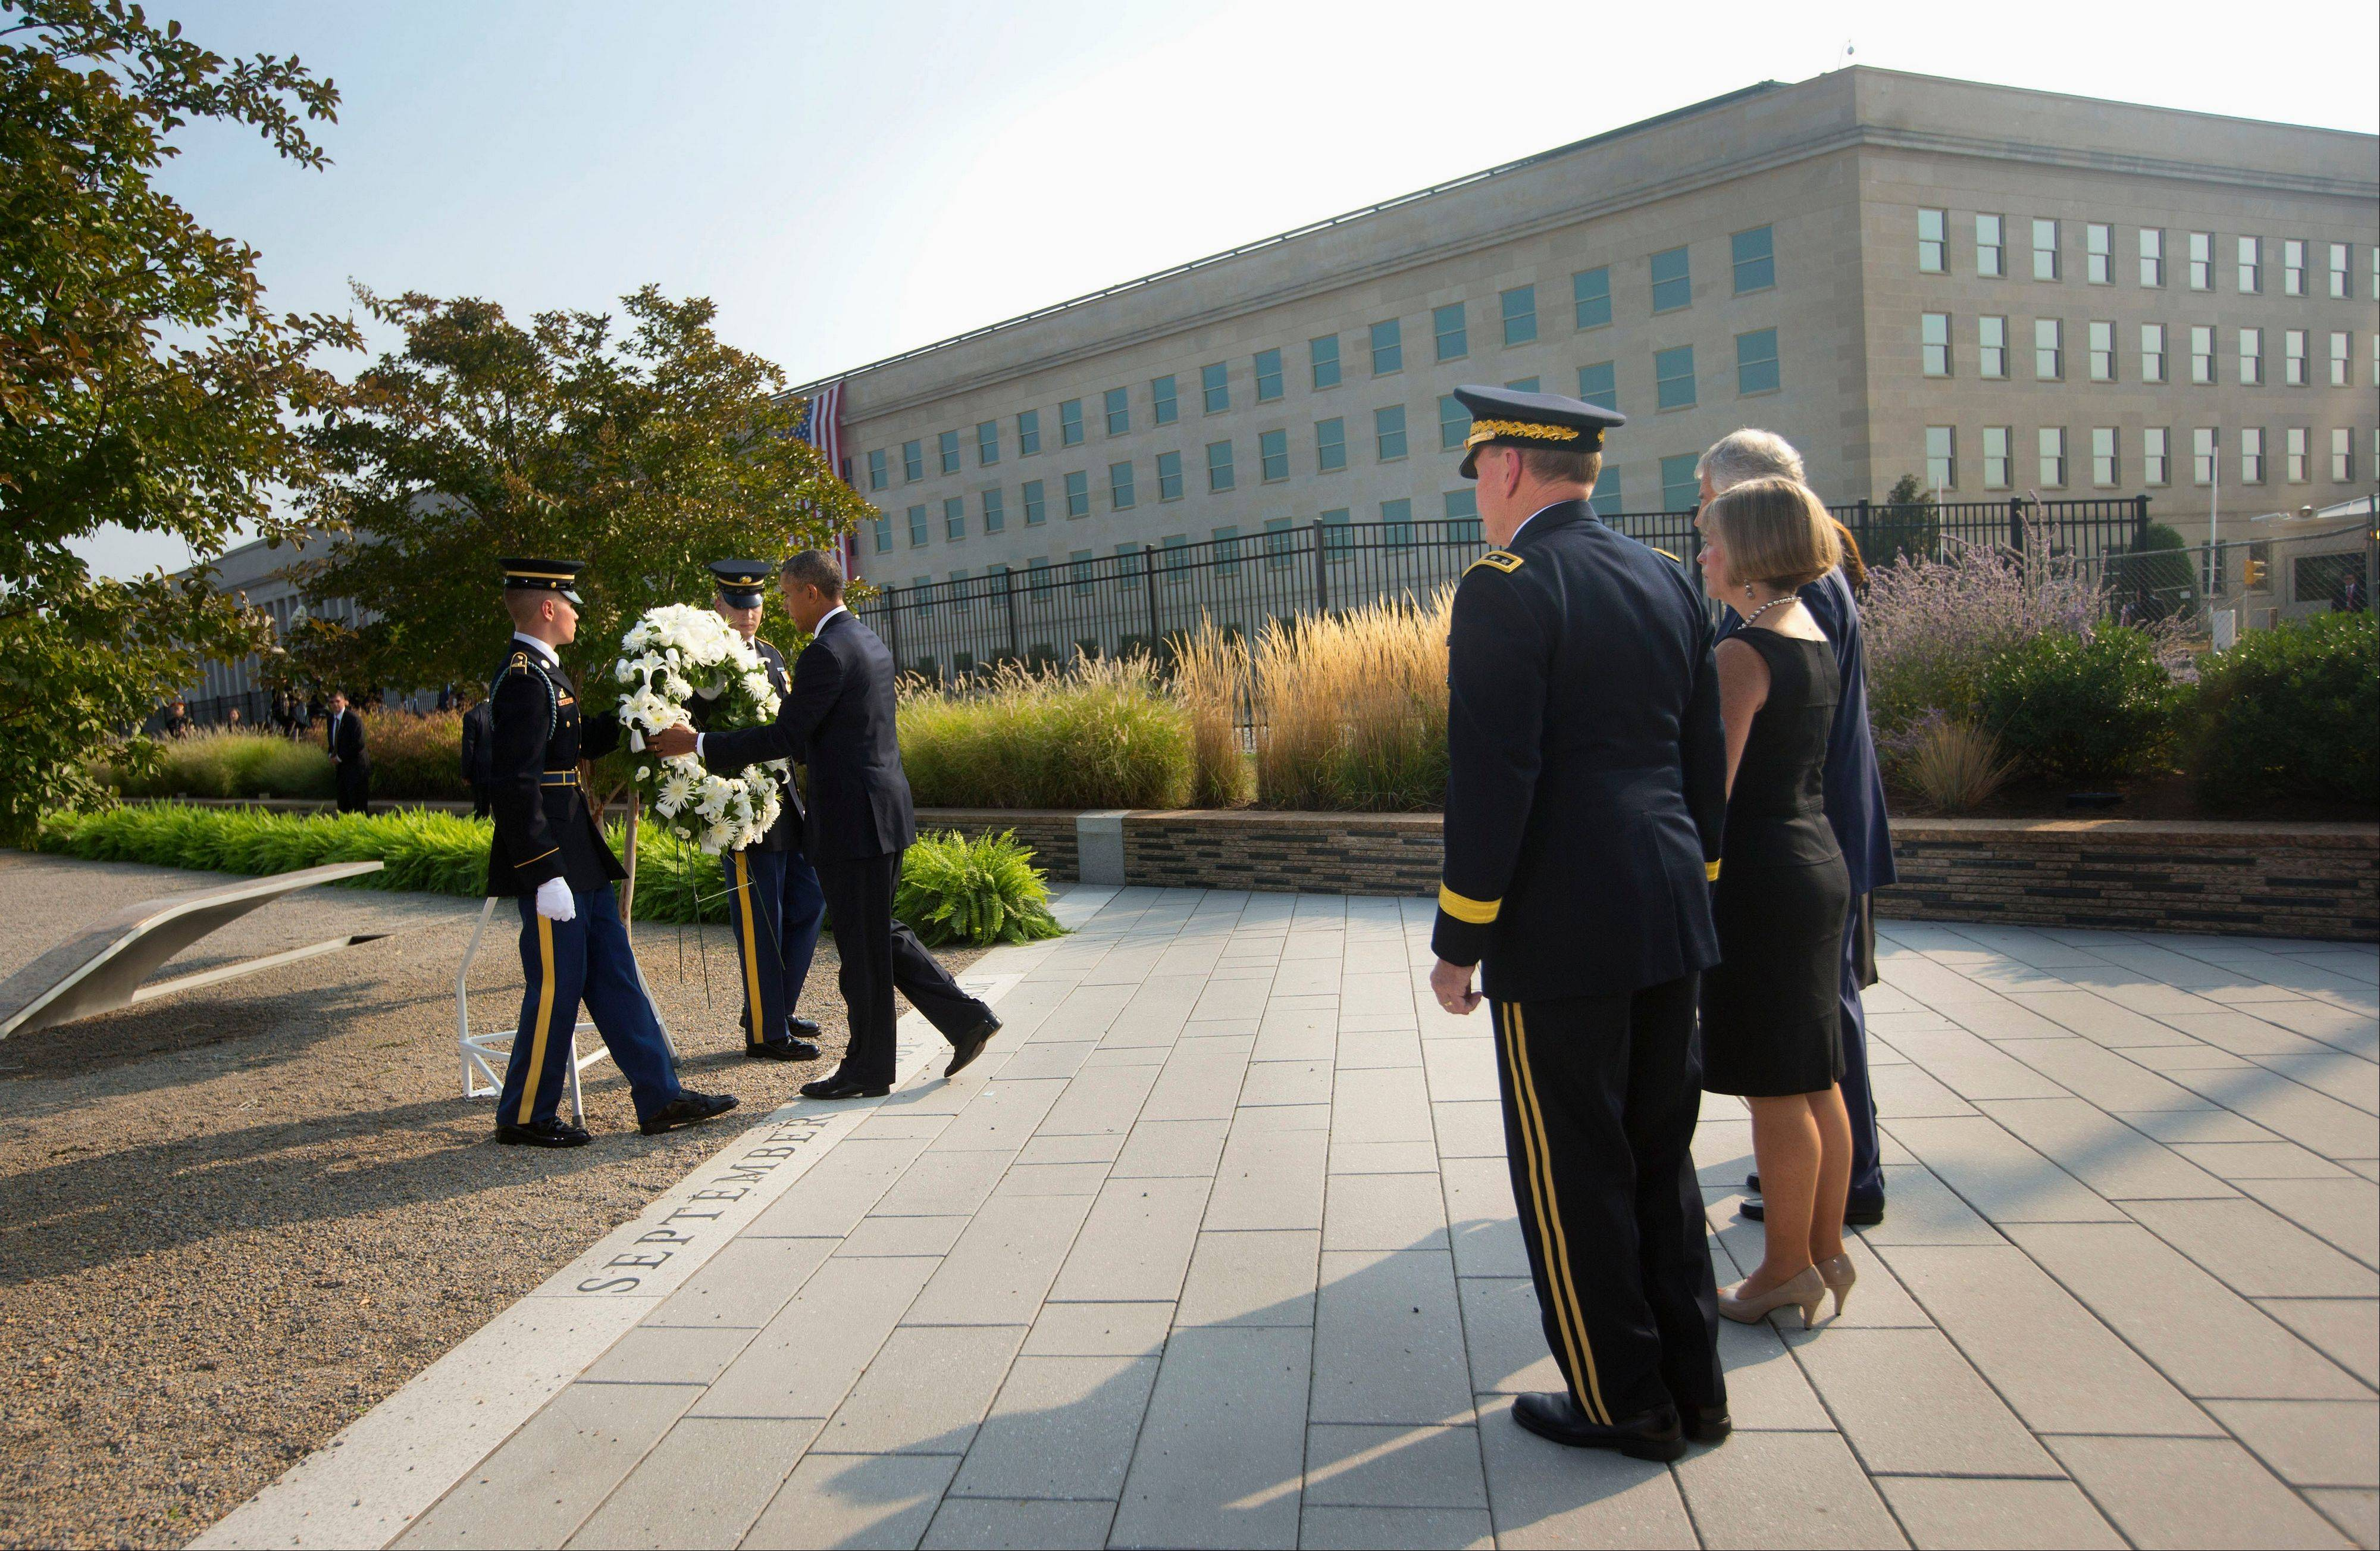 President Barack Obama places a wreath at the Pentagon Sept. 11 memorial, as Joint Chiefs Chairman Gen. Martin Dempsey, his wife Deanie Dempsey and Defense Secretary Chuck Hagel, watch Wednesday, Sept. 11, 2013, at the Pentagon during a ceremony to mark the 12th anniversary of the 9/11 attacks.